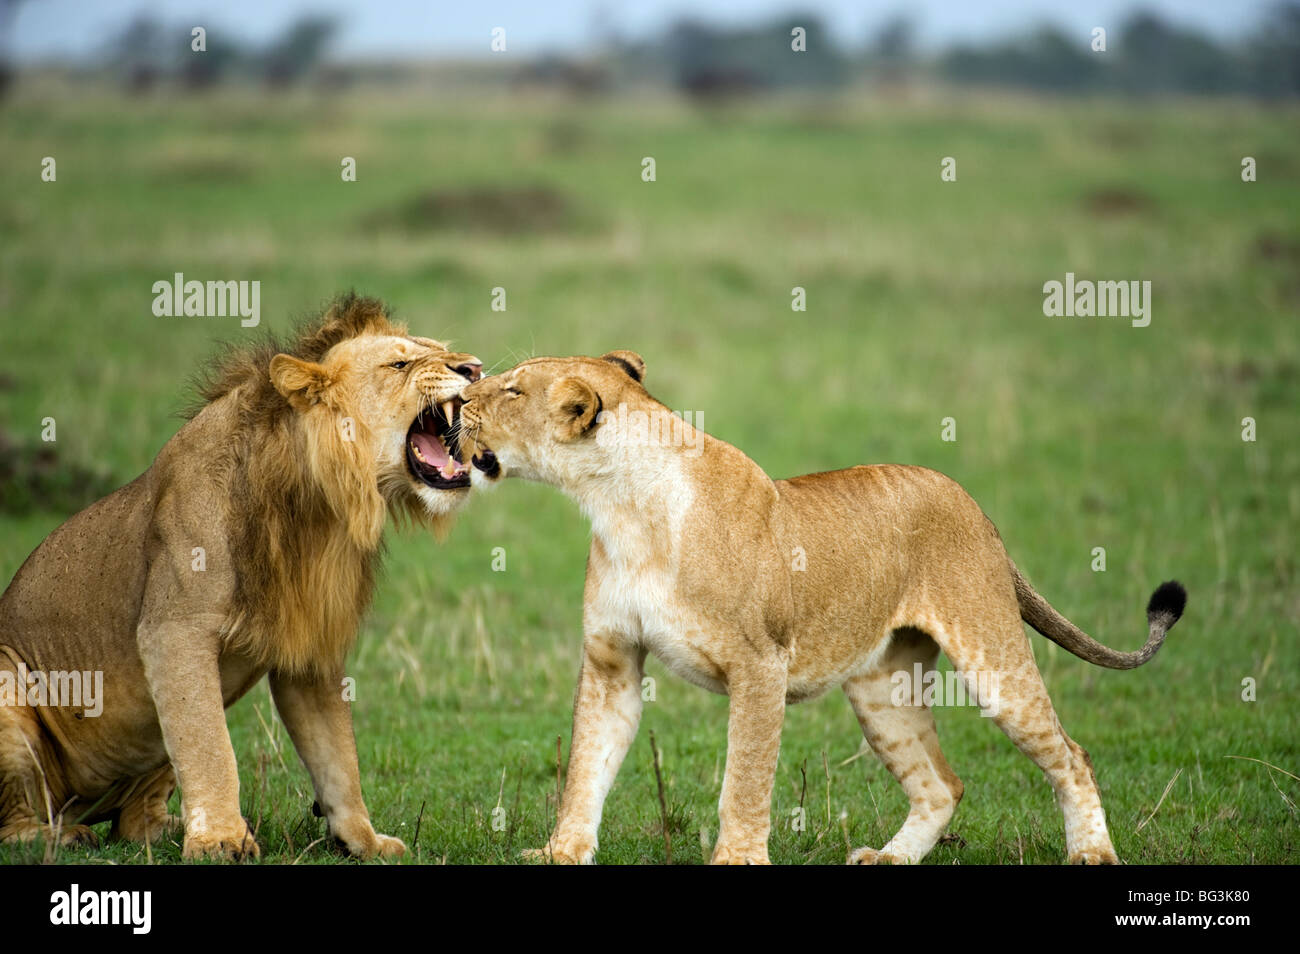 Courting Lions - Stock Image